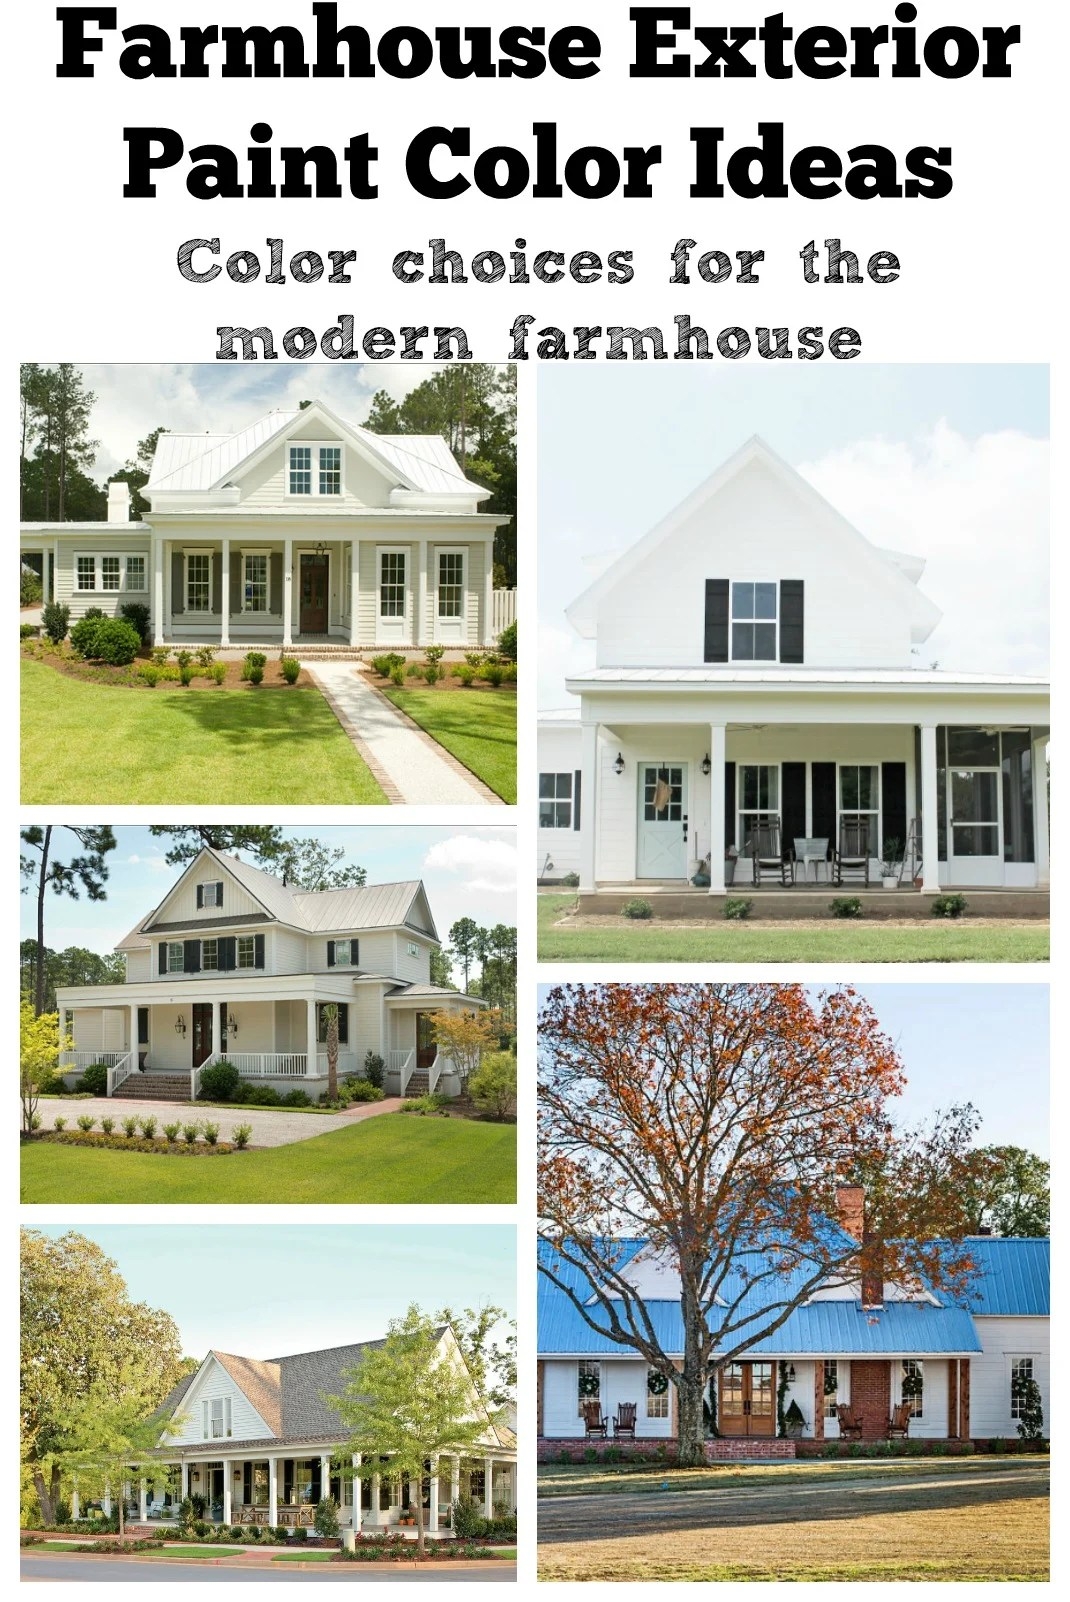 Farmhouse Color Palette Exterior Farmhouse Exterior Paint Color Ideas